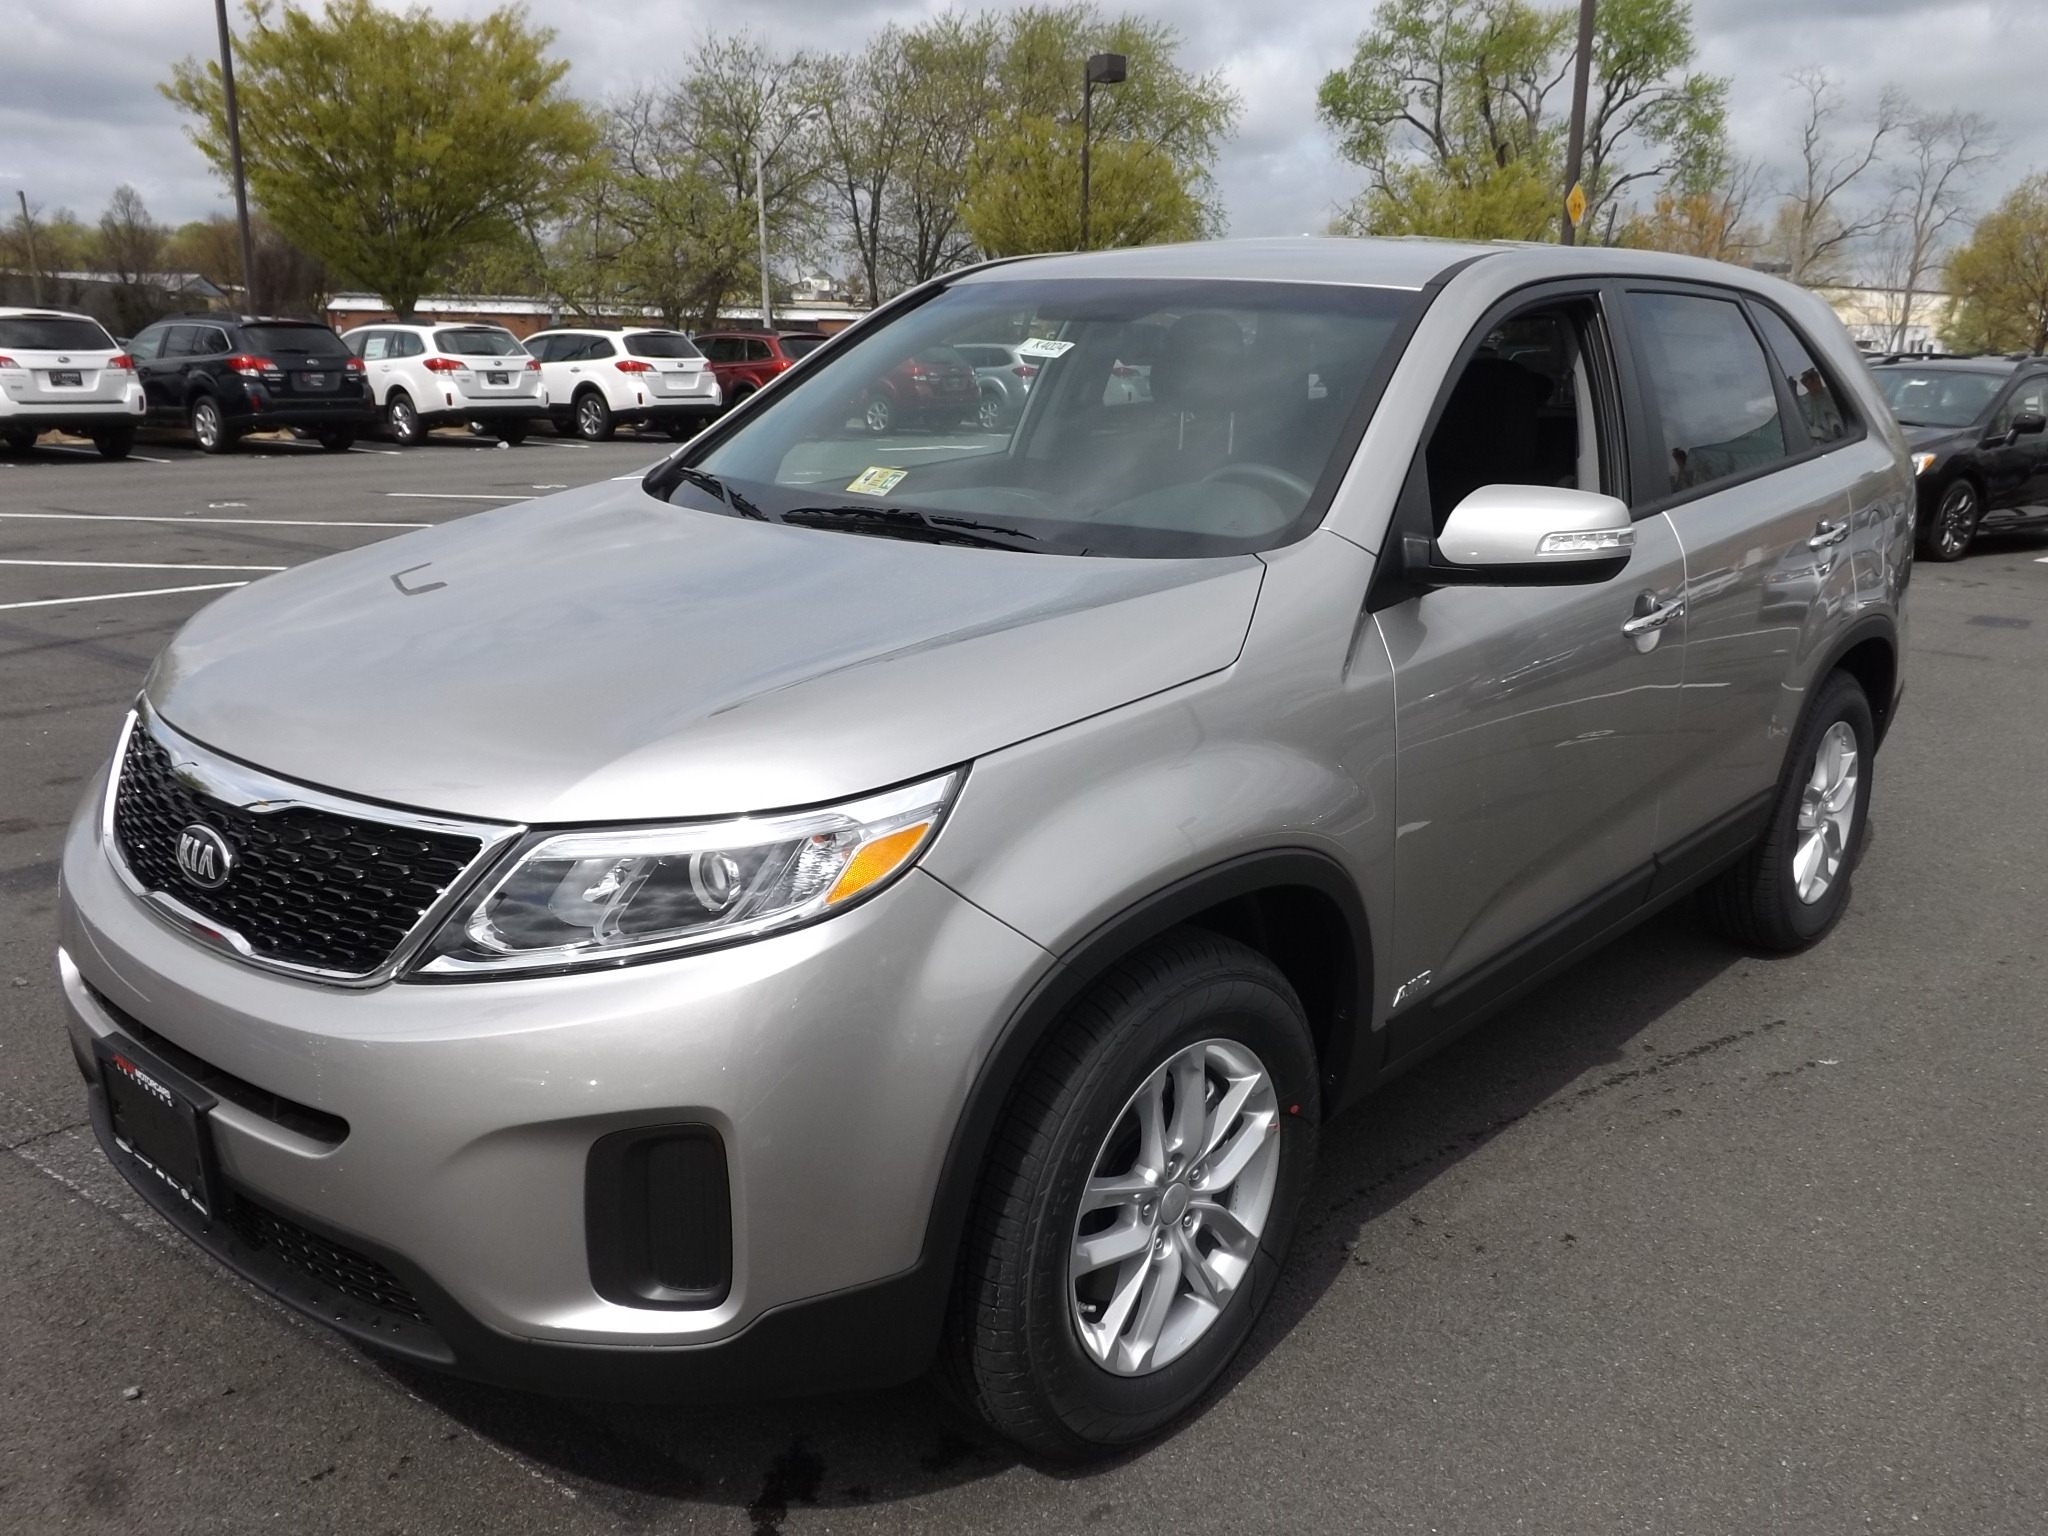 New Kia Sorento in Leesburg, VA | Inventory, Photos, Videos, Features